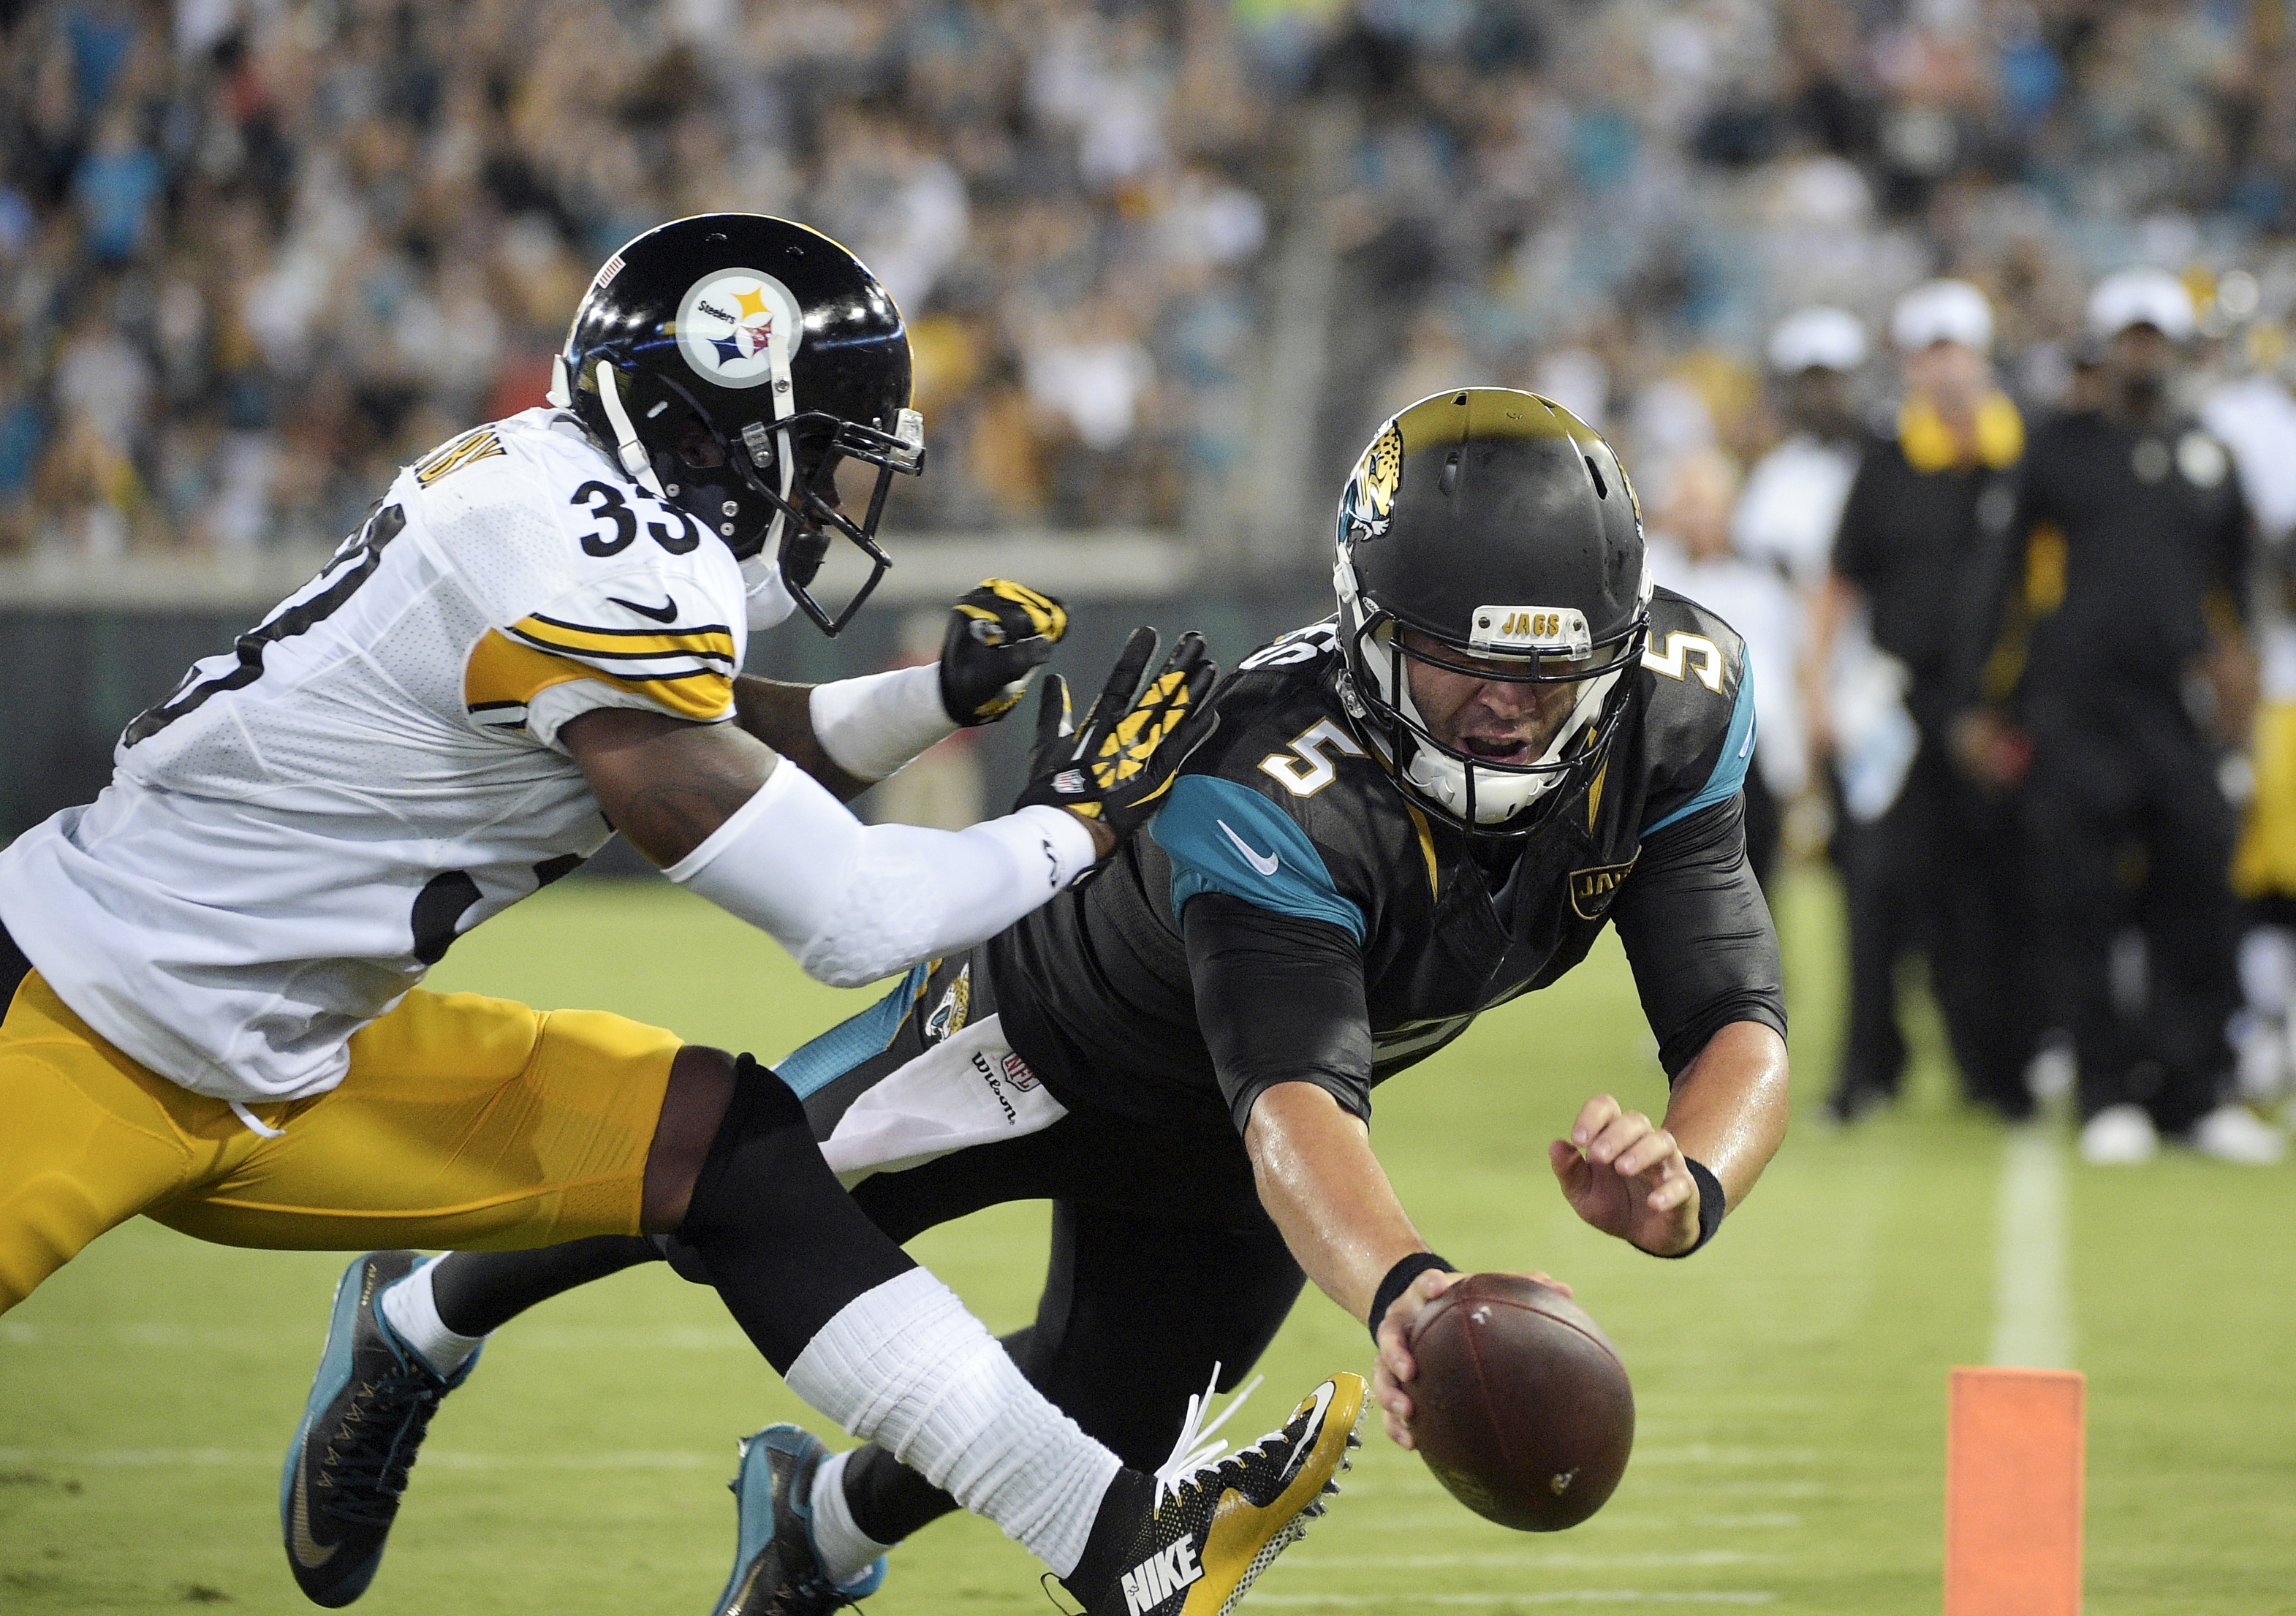 FILE - In this Aug. 14, 2015, file photo, Jacksonville Jaguars quarterback Blake Bortles dives over the goal for a 4-yard touchdown run past Pittsburgh Steelers defensive back Alden Darby (33) during the first half of a preseason NFL football game in Jack